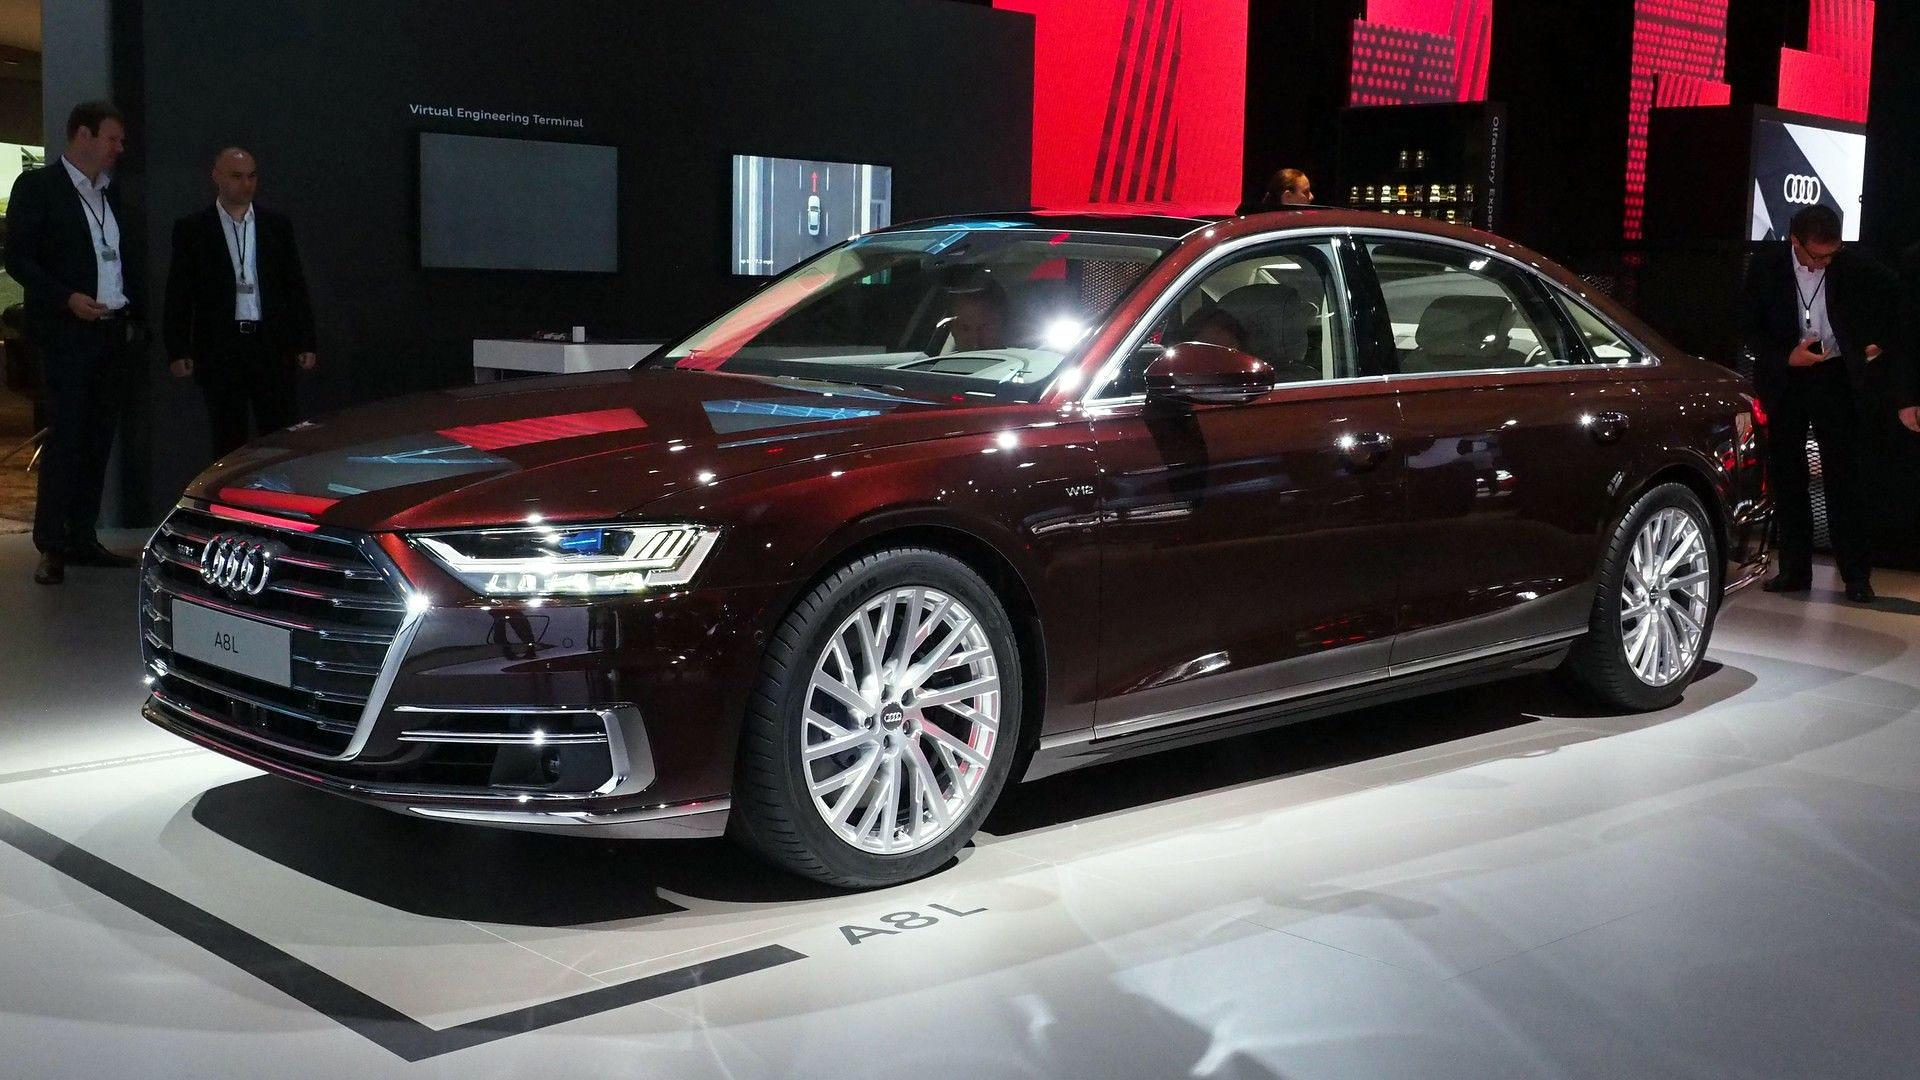 2018 Audi A8 Has Lasers, Foot Magers, And A Big Price Tag